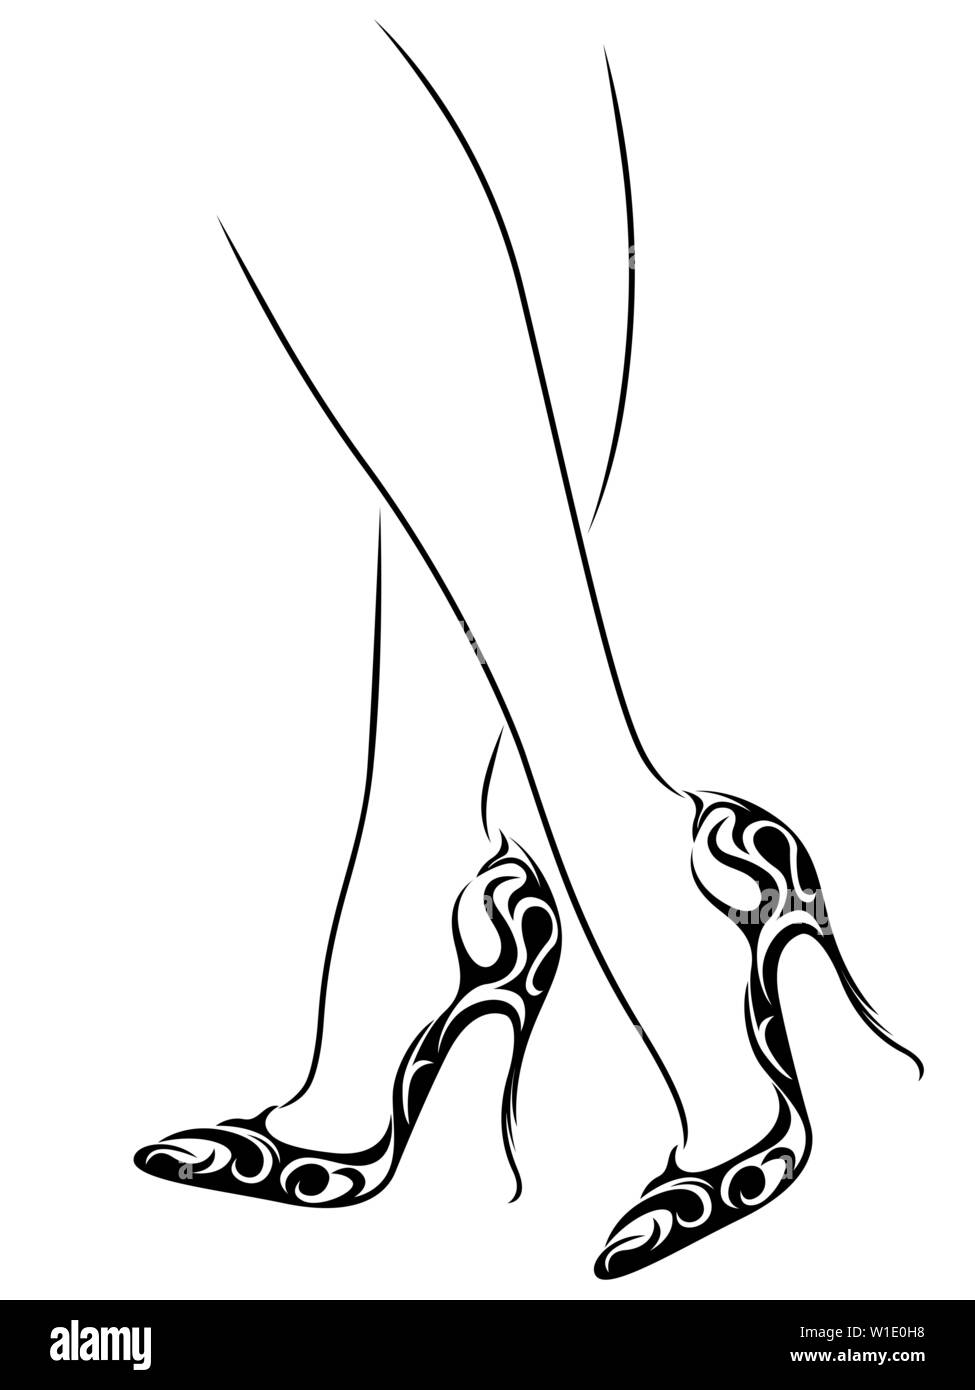 outline of graceful female feet in abstract shoes with high heels black over white vector artwork stock vector image art alamy https www alamy com outline of graceful female feet in abstract shoes with high heels black over white vector artwork image259077988 html